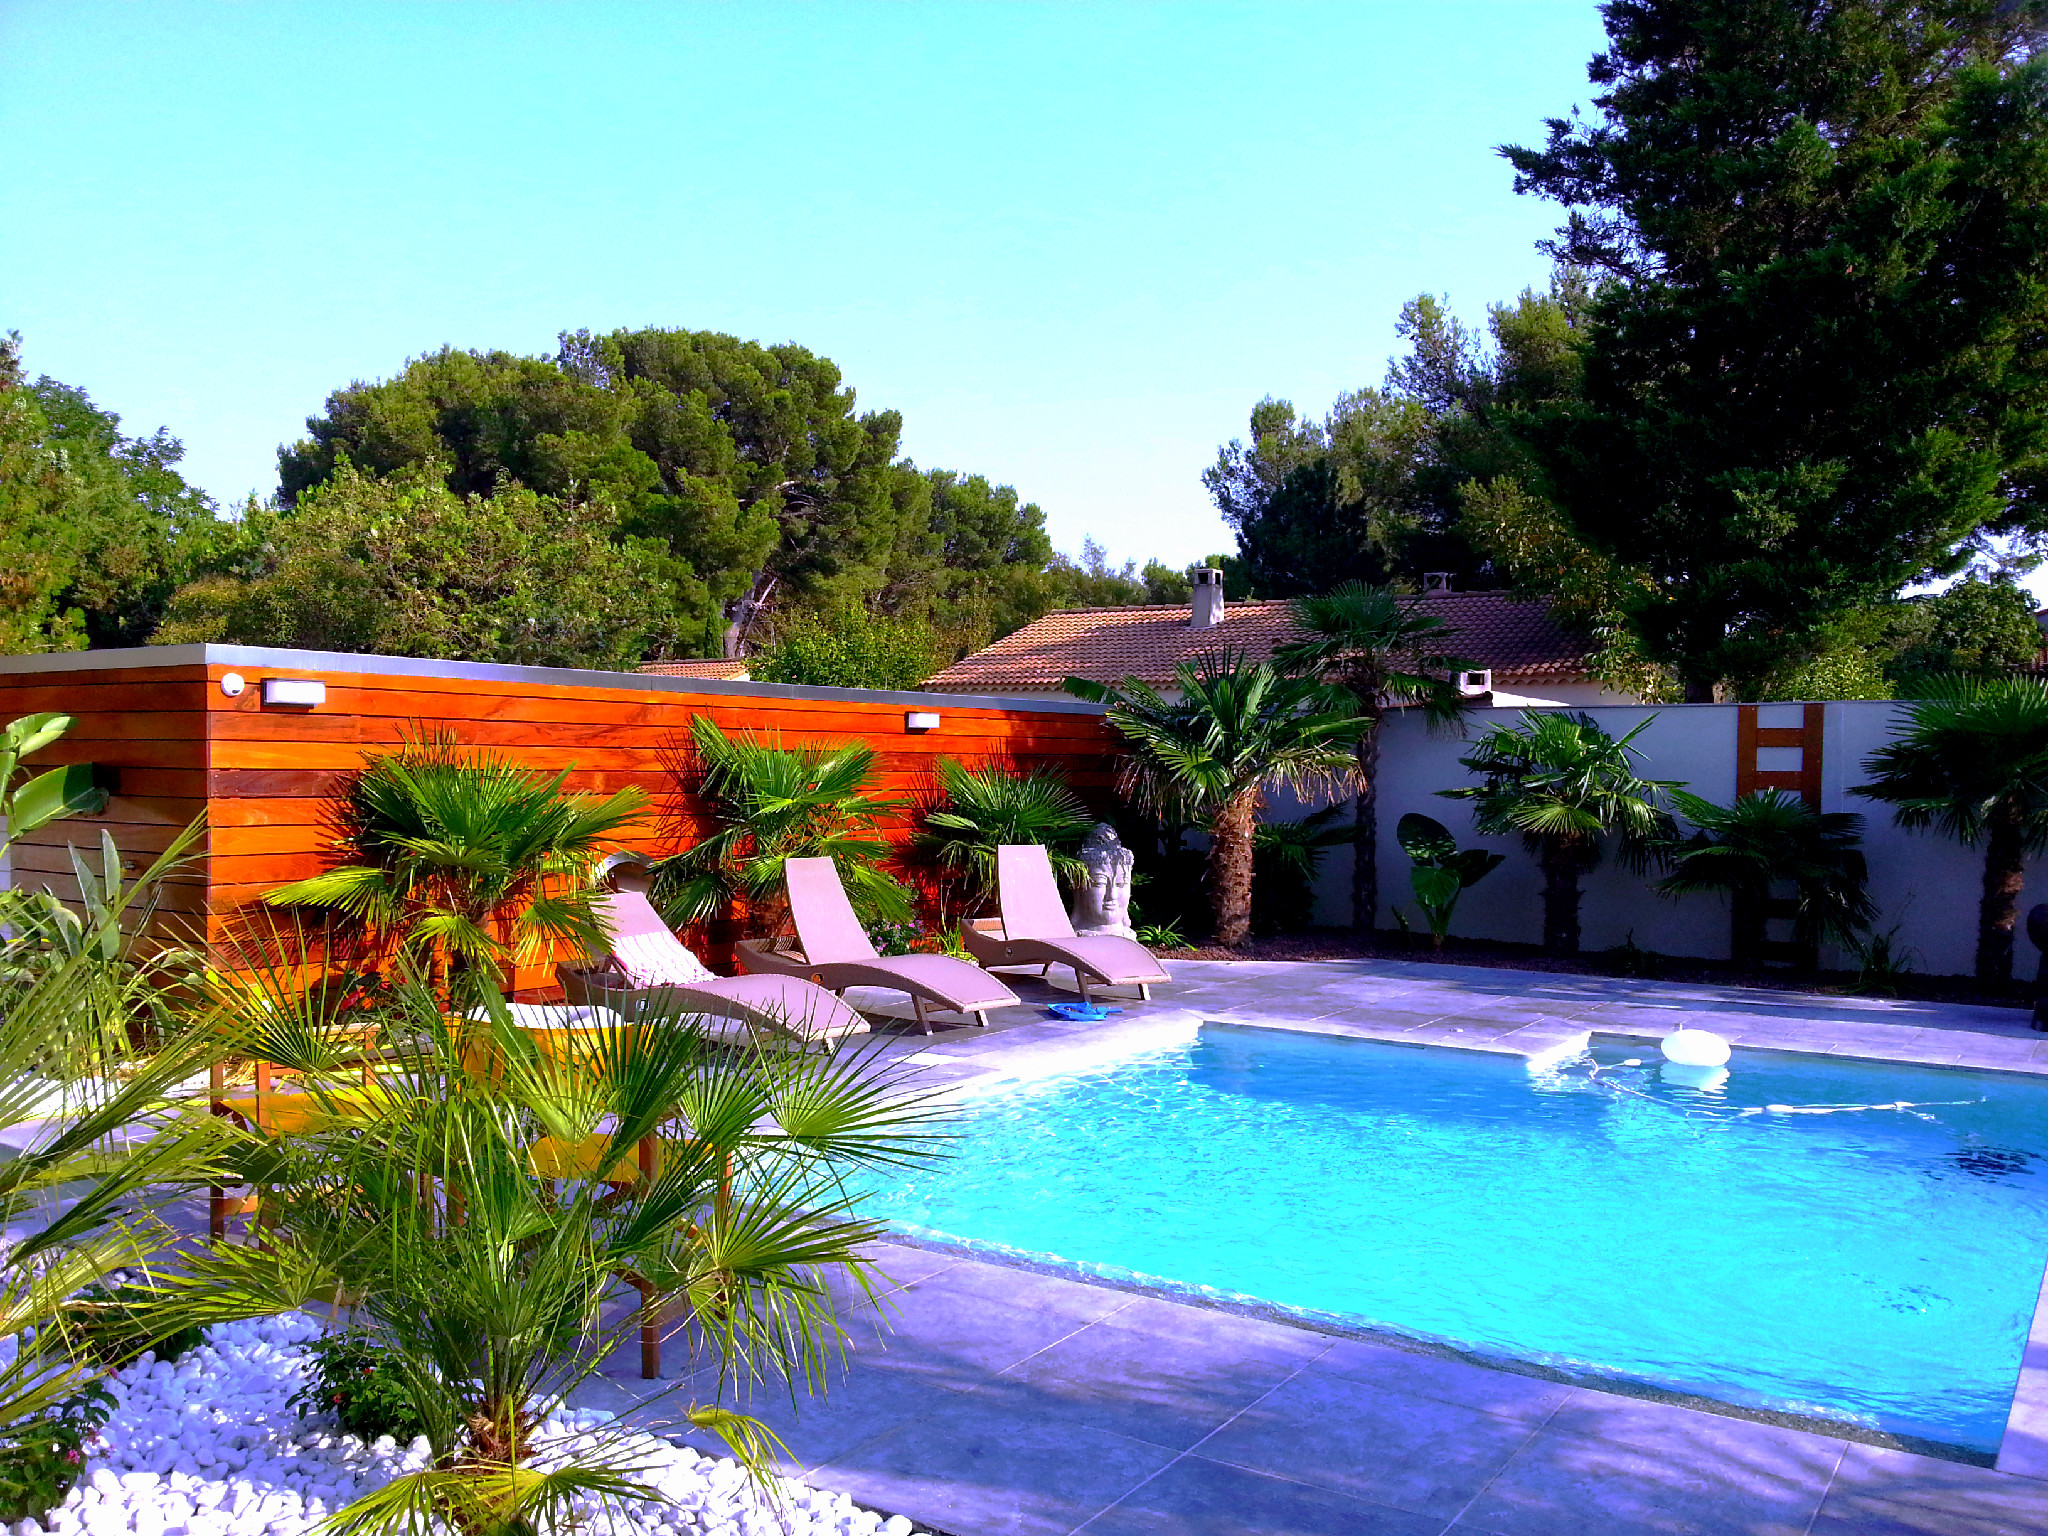 Am nagement piscine marseille aix en provence for Amenagement jardin piscine